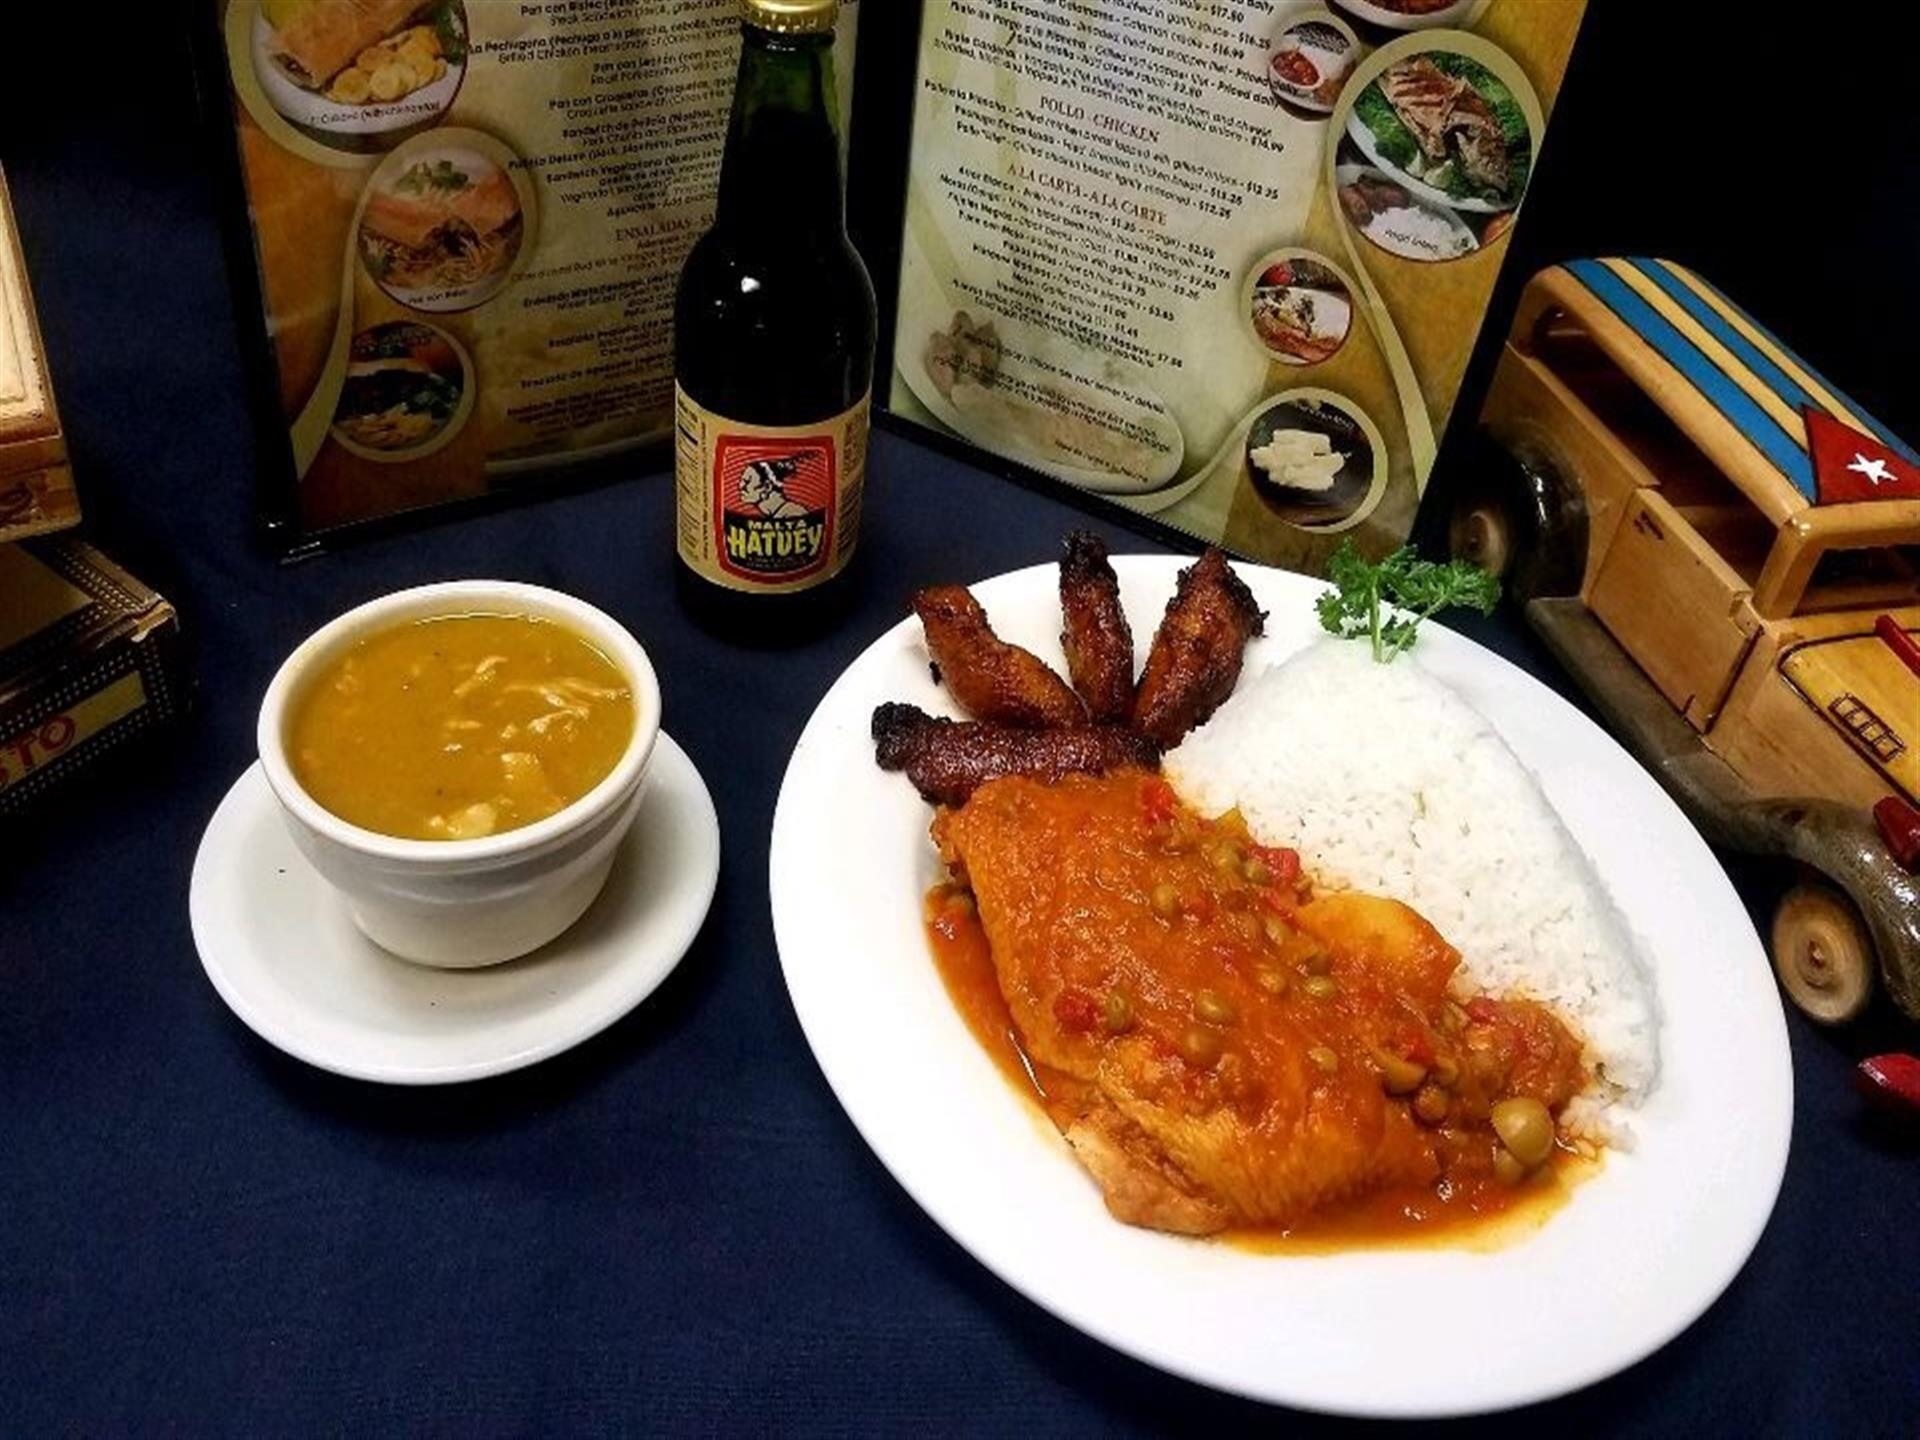 Filete de Pargo a la Plancha. Grilled red snapper filet topped with salsa criolla (creole sauce). white rice, fried plantains and cup of soup on the side.